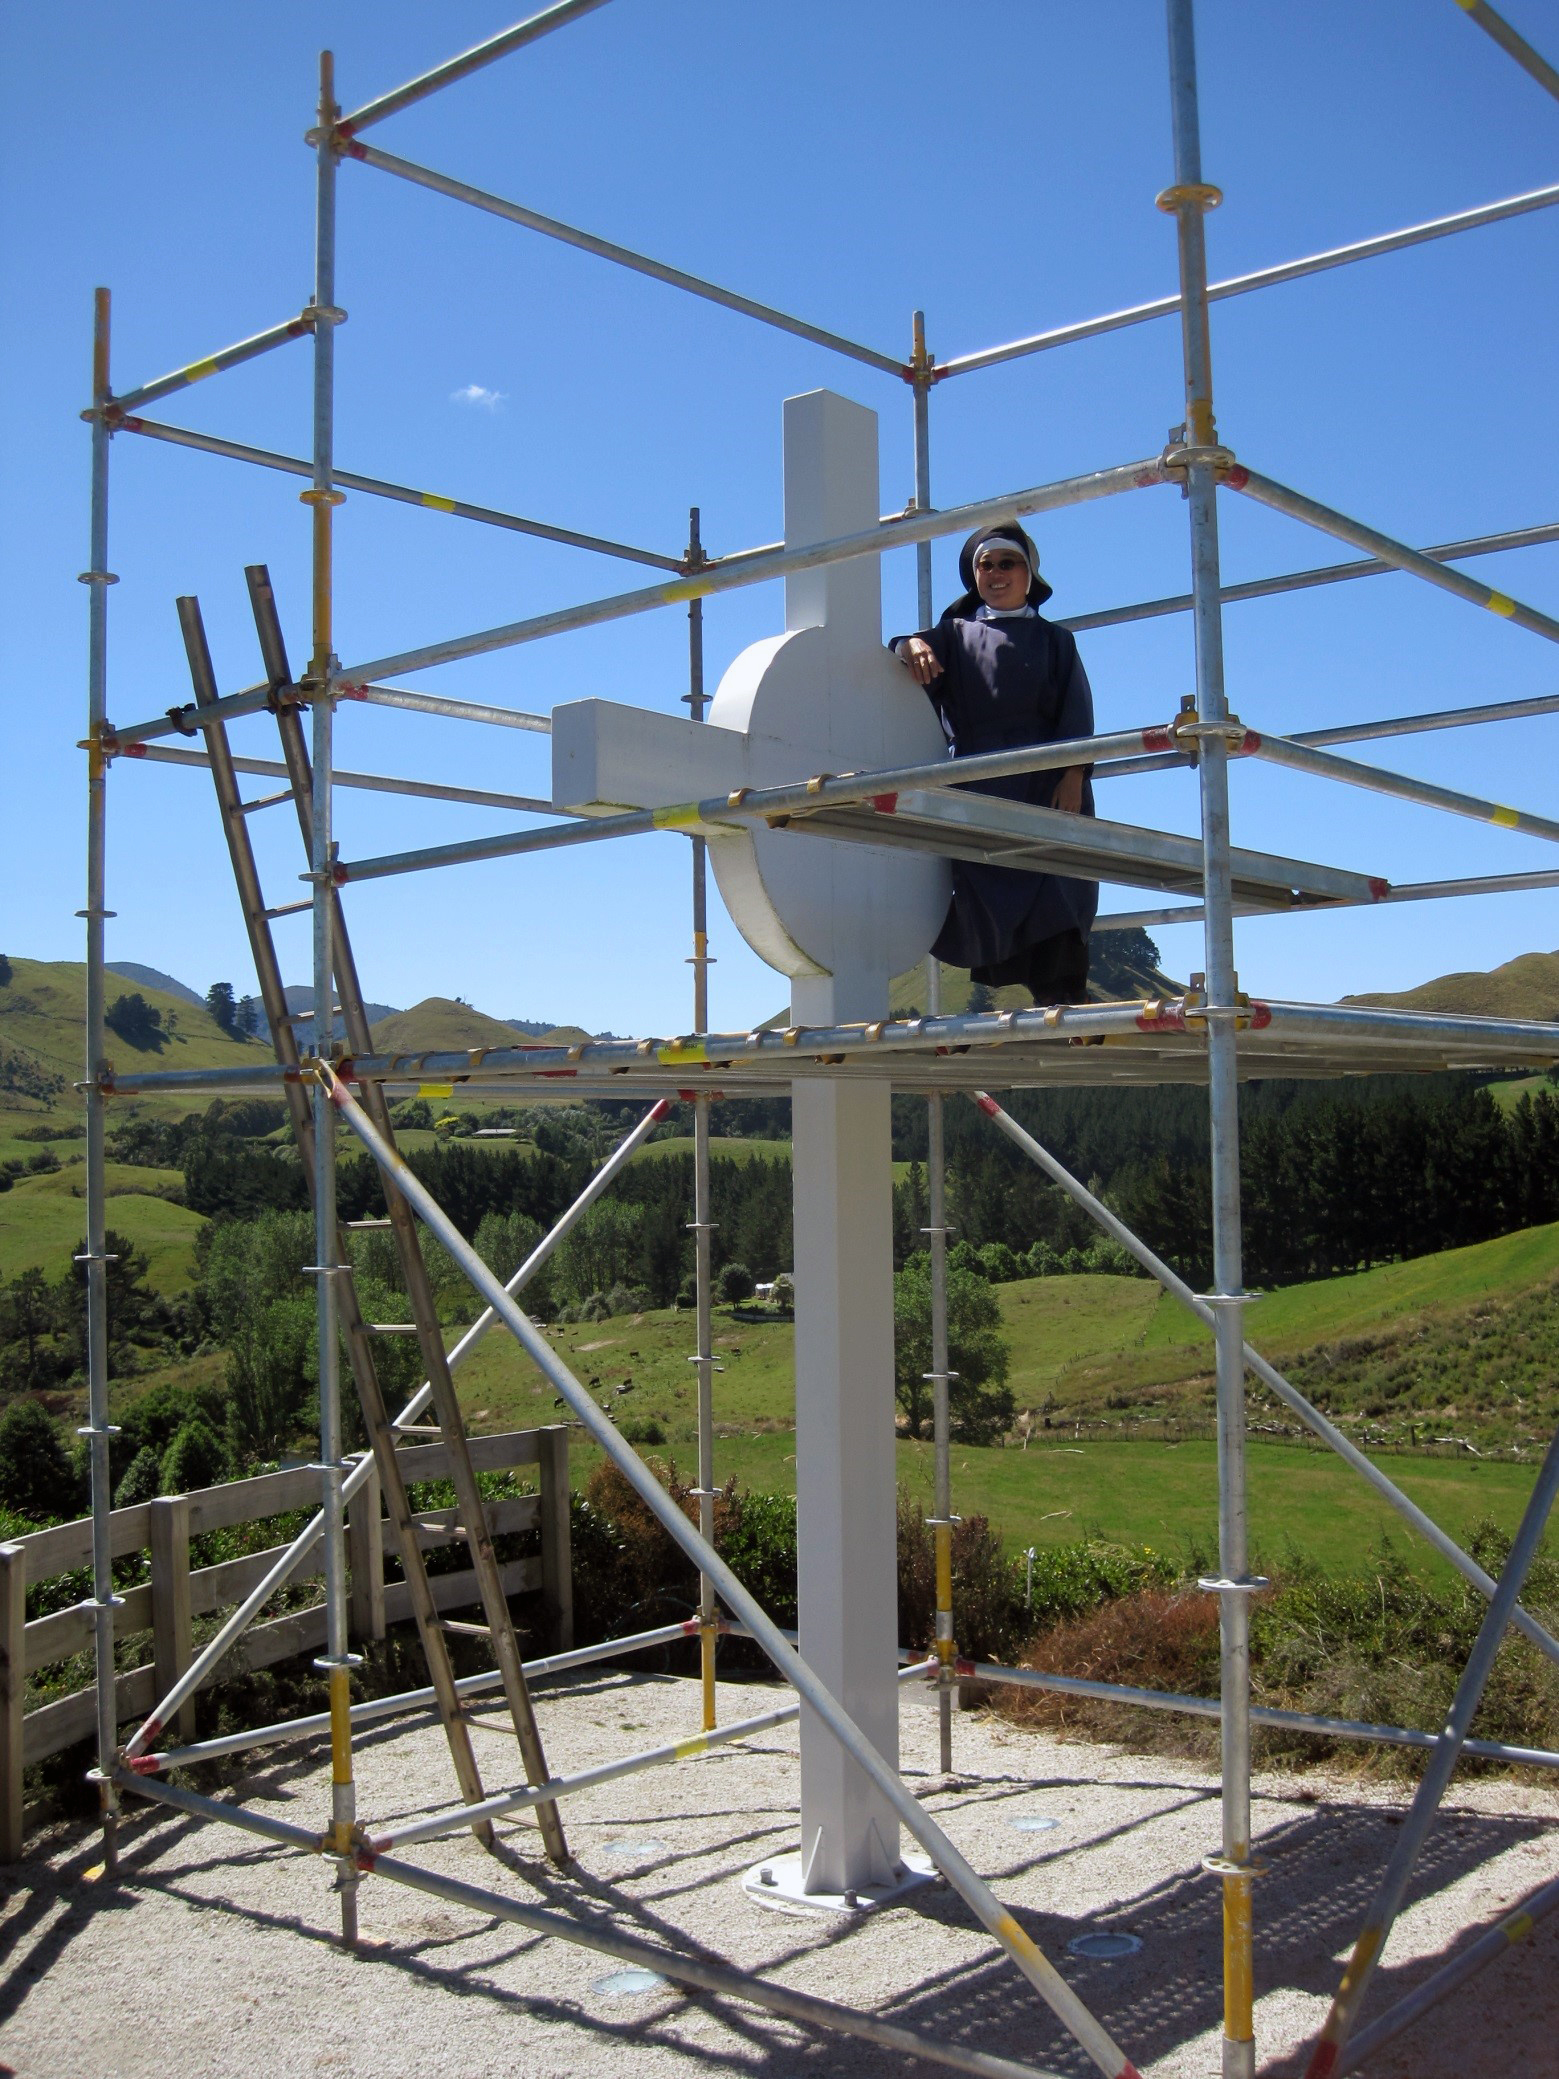 Bill setting up the scaffolding